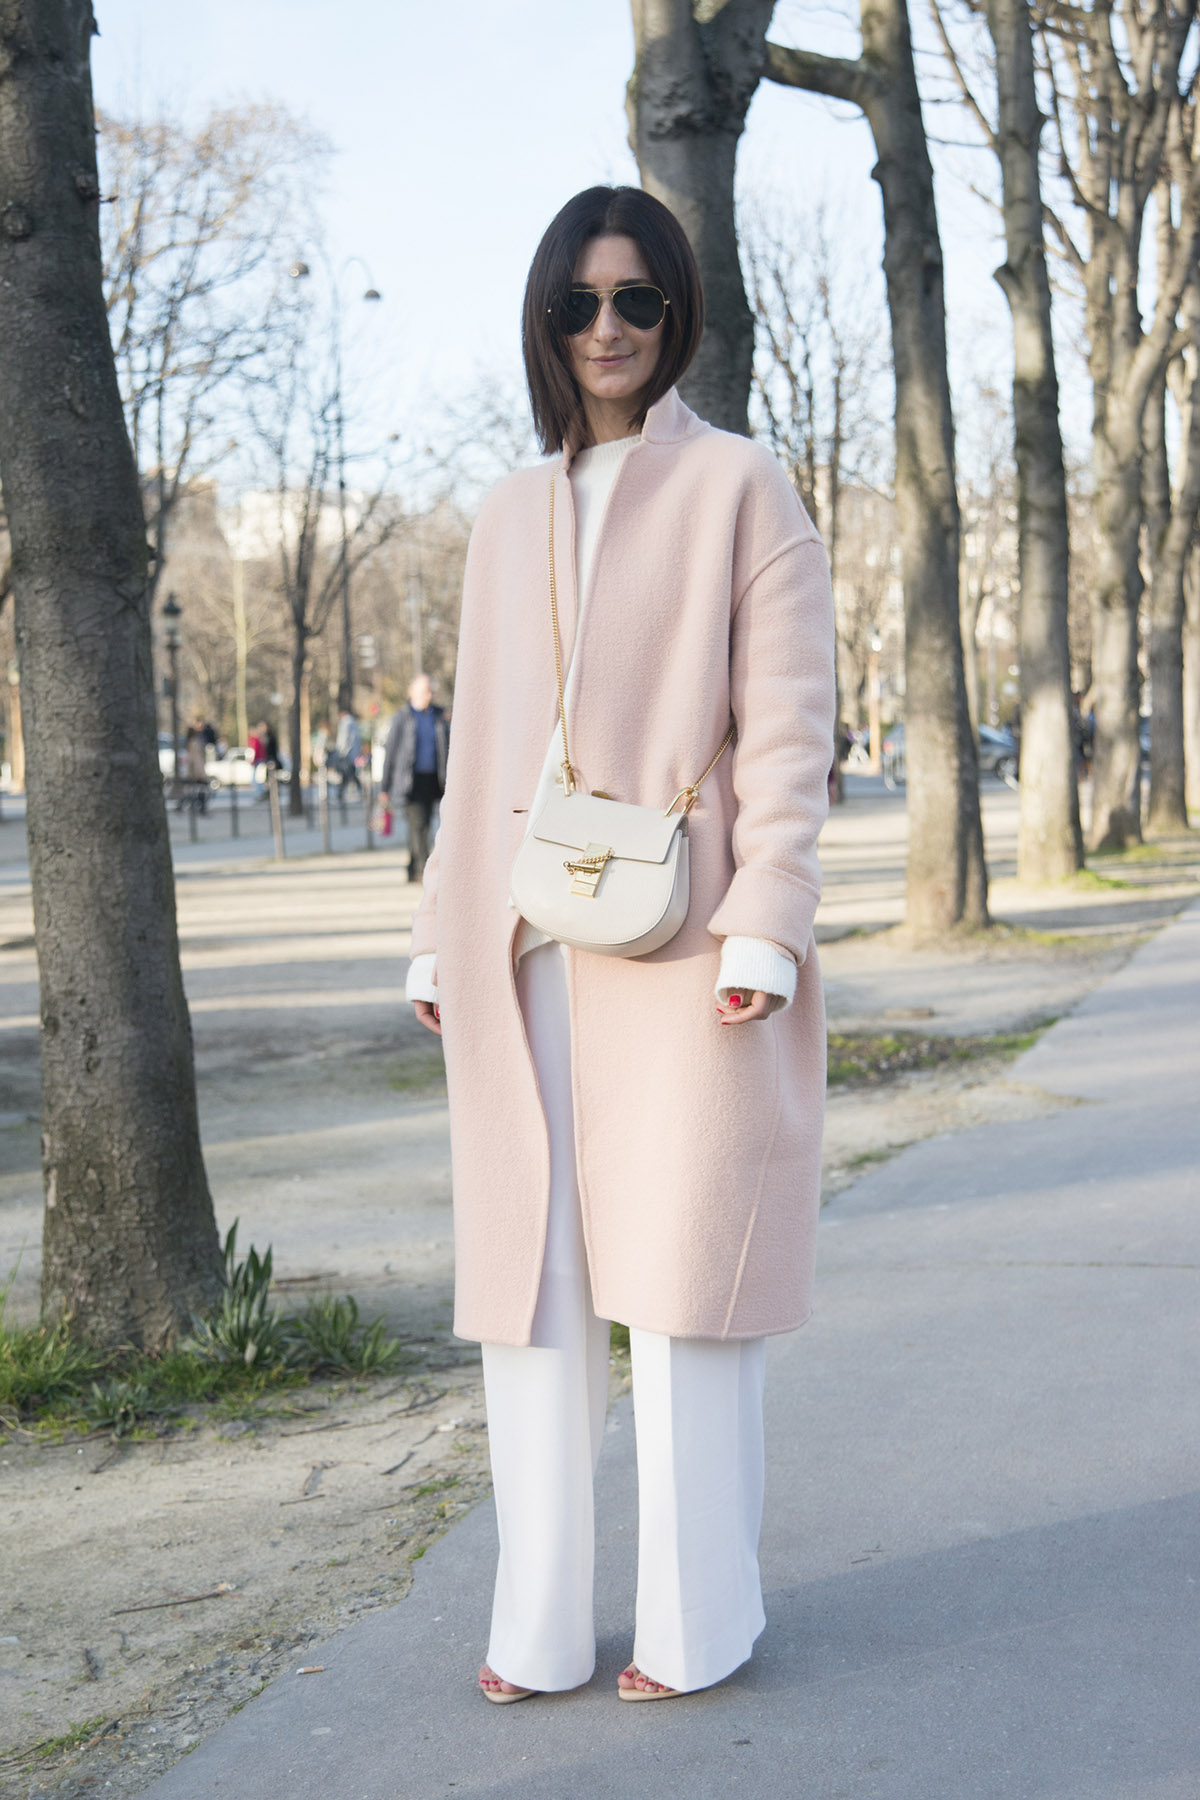 PARIS, FRANCE - MARCH 08: Store owner and fashion blogger Golestaneh wears a Celine coat, Zara top and shoes, Fall Winter Spring Summer trousers, Chloe bag and Ray Ban sunglasses on day 6 of Paris Collections: Women on March 08, 2015 in Paris, France. (Photo by Kirstin Sinclair/Getty Images)